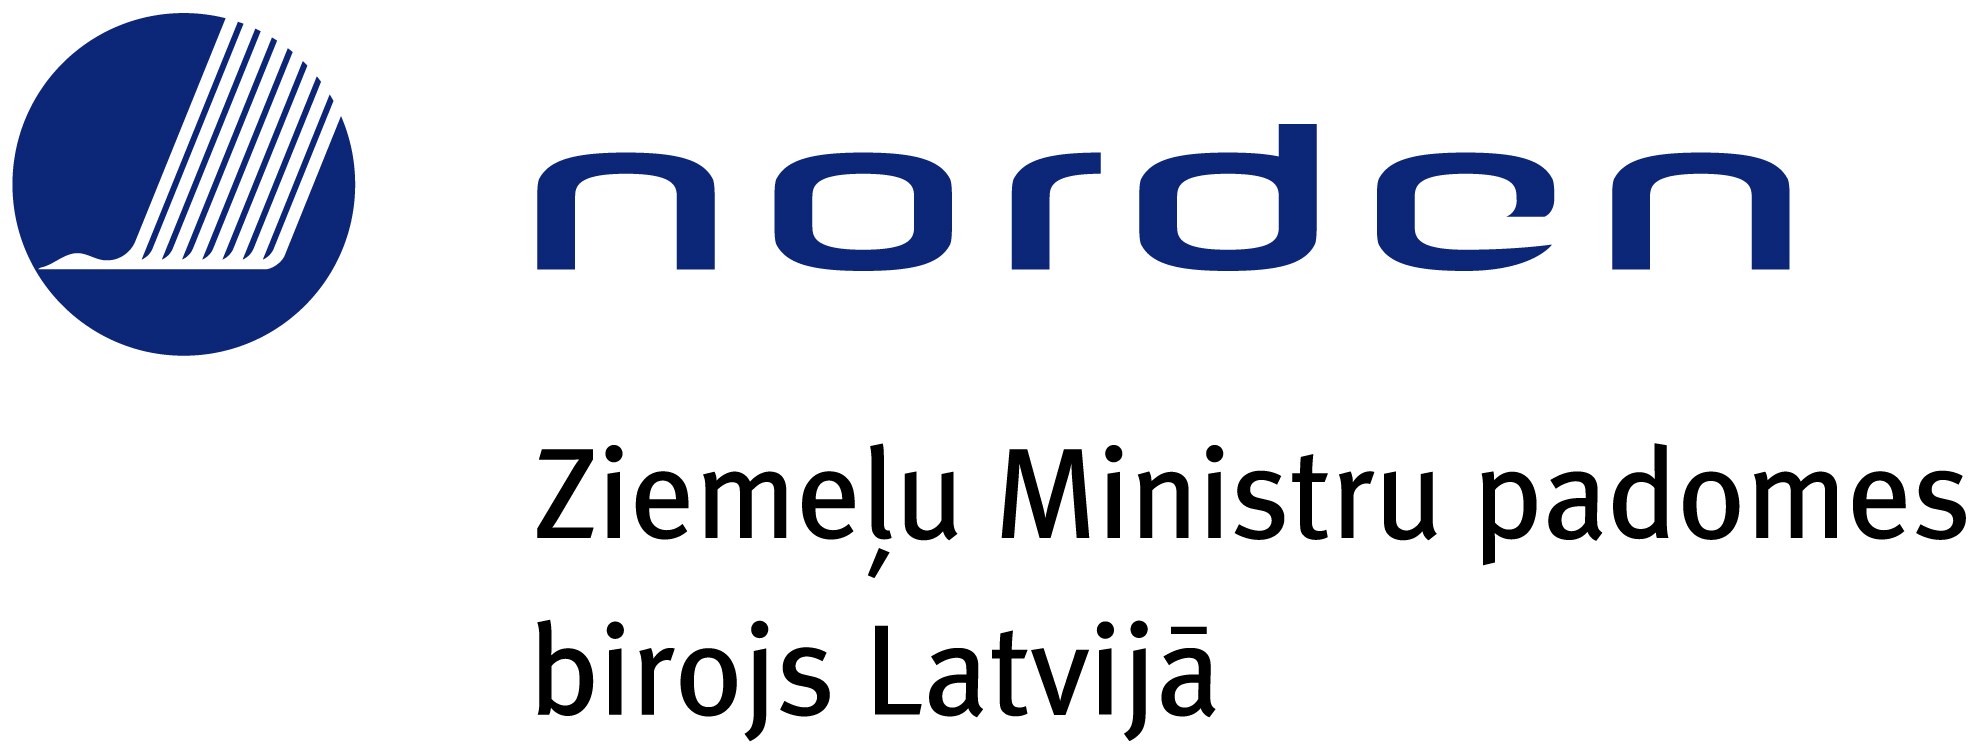 Norden - Nordic Council of Ministers